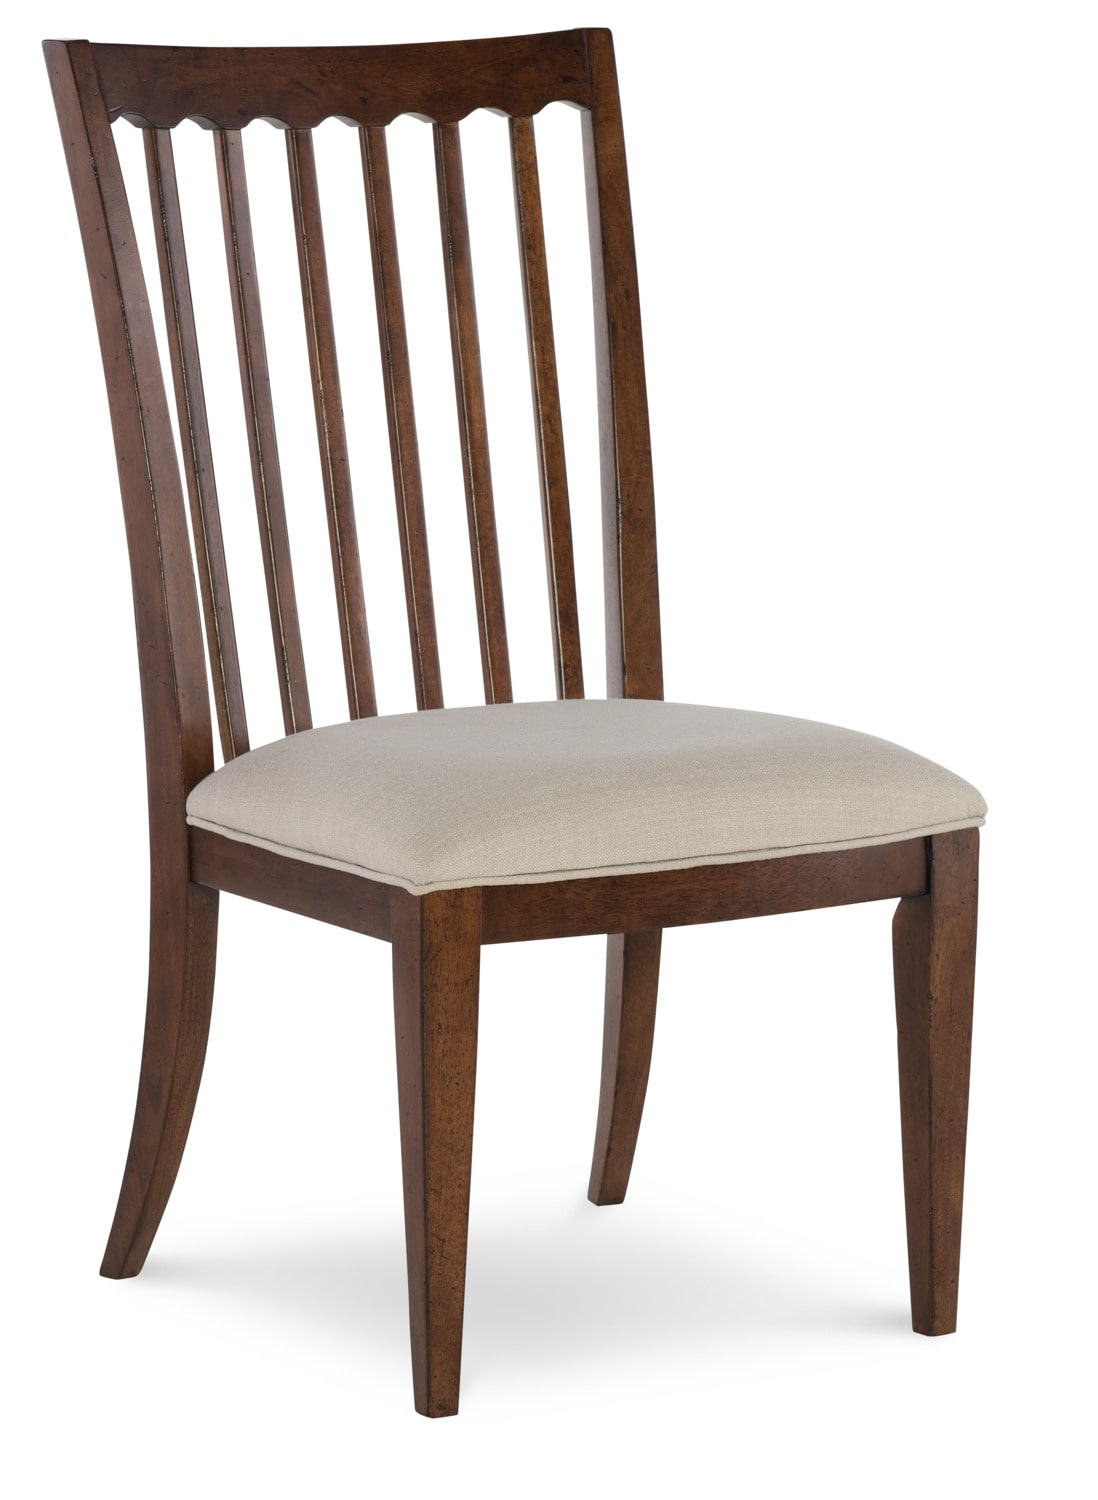 Rachael ray upstate side chair cherry leon 39 s for Cherry dining room chairs